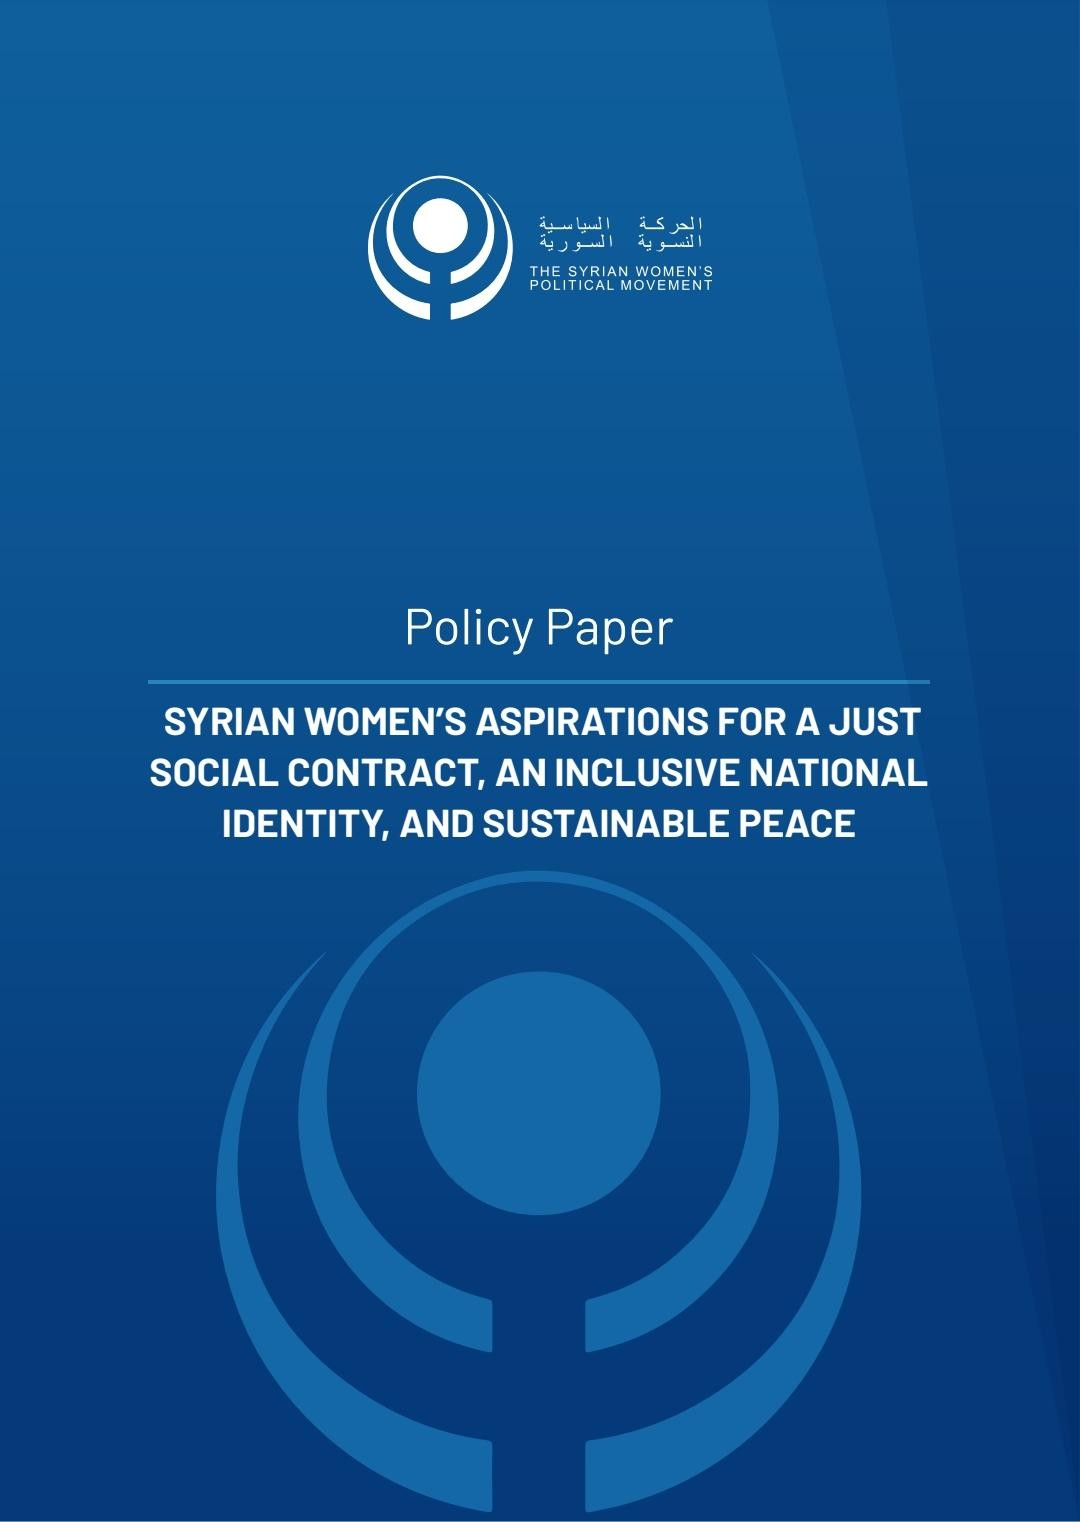 Policy Paper: Syrian Women's Aspirations for a Just Social Contract, an Inclusive National Identity, and Sustainable Peace